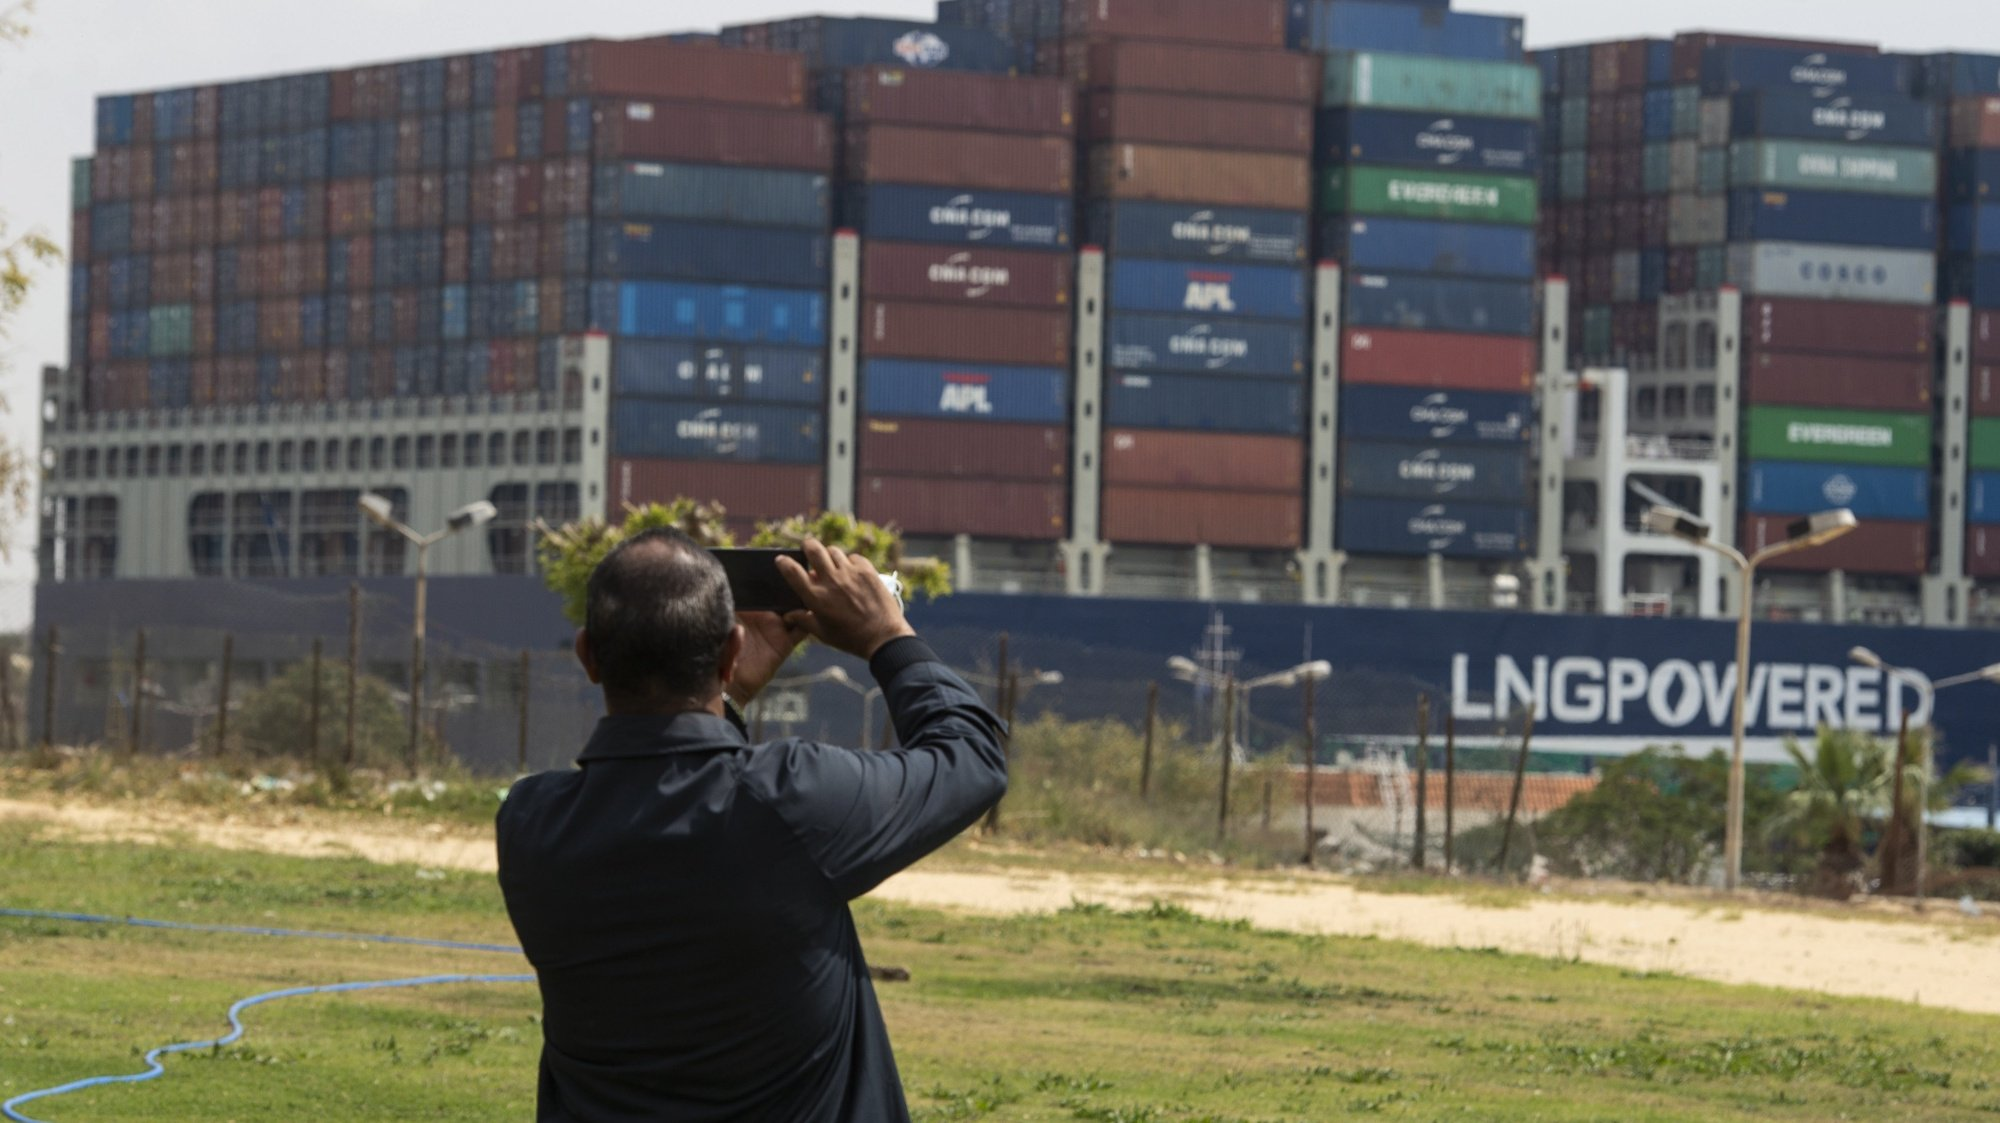 epa09106426 A container ship starts moving in the Suez Canal, in Ismalia, Egypt, 30 March 2021. The Suez Canal Authority on 29 March said that traffic is to resume after the large container ship 'Ever Given' was refloated and 43 vessels had resumed transit so far from the Great Bitter Lake, which separates two sections of the canal. The Ever Given ran aground in the Suez Canal on 23 March, causing a huge traffic backlog of ships.  EPA/Mohamed Hossam